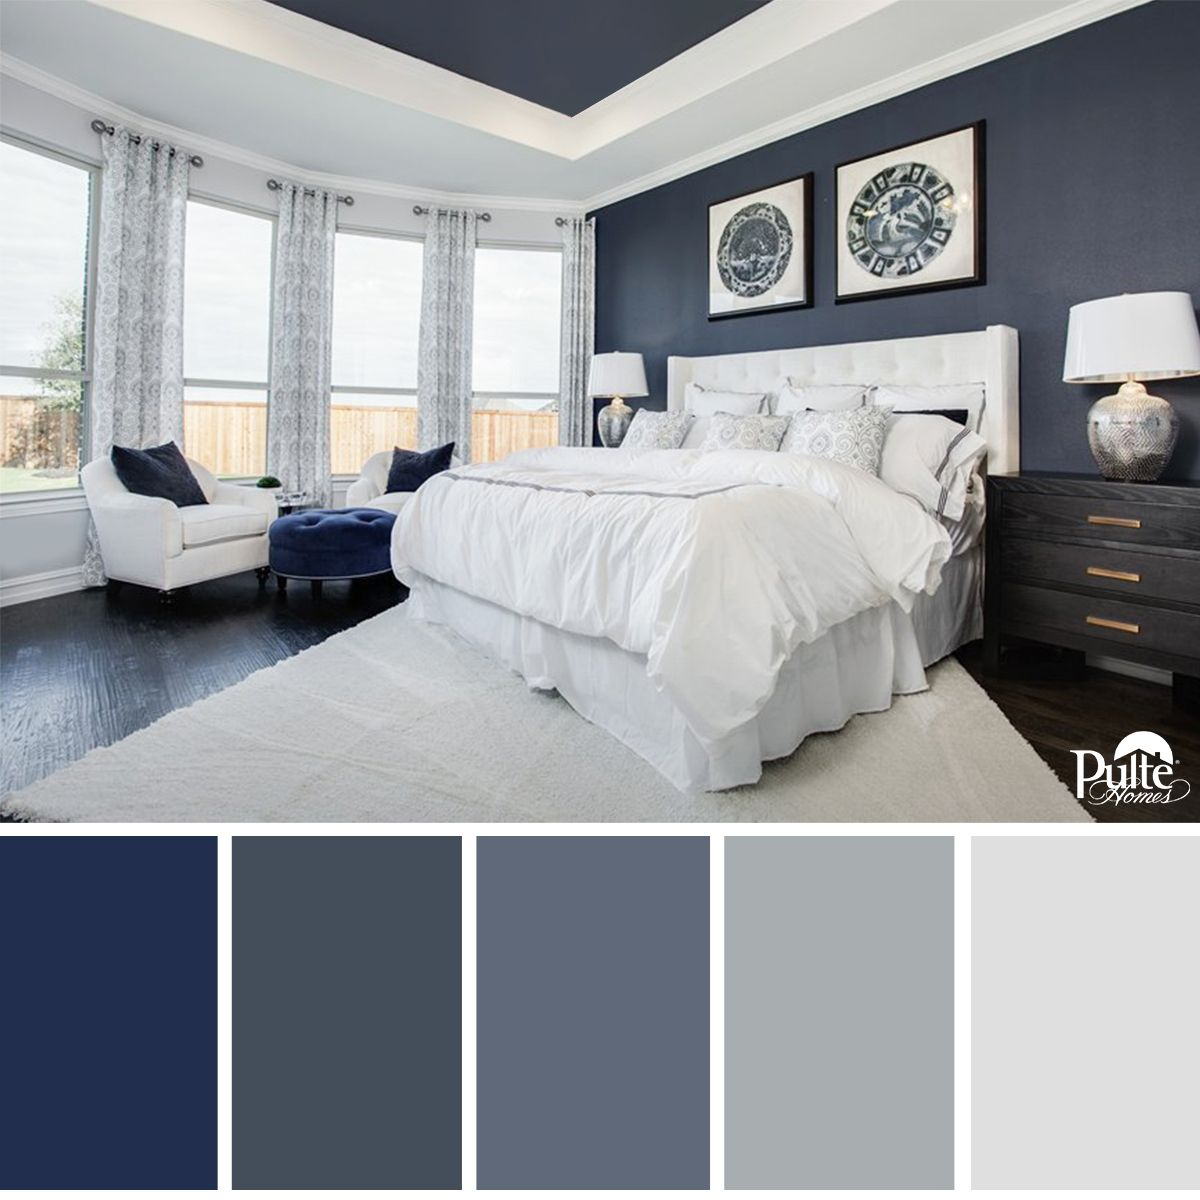 This Bedroom Design Has The Right Idea. The Rich Blue Color Palette And  Decor Create A Dreamy Space That Begs You To Kick Back And Relax. | Pulte  Homes Good Ideas